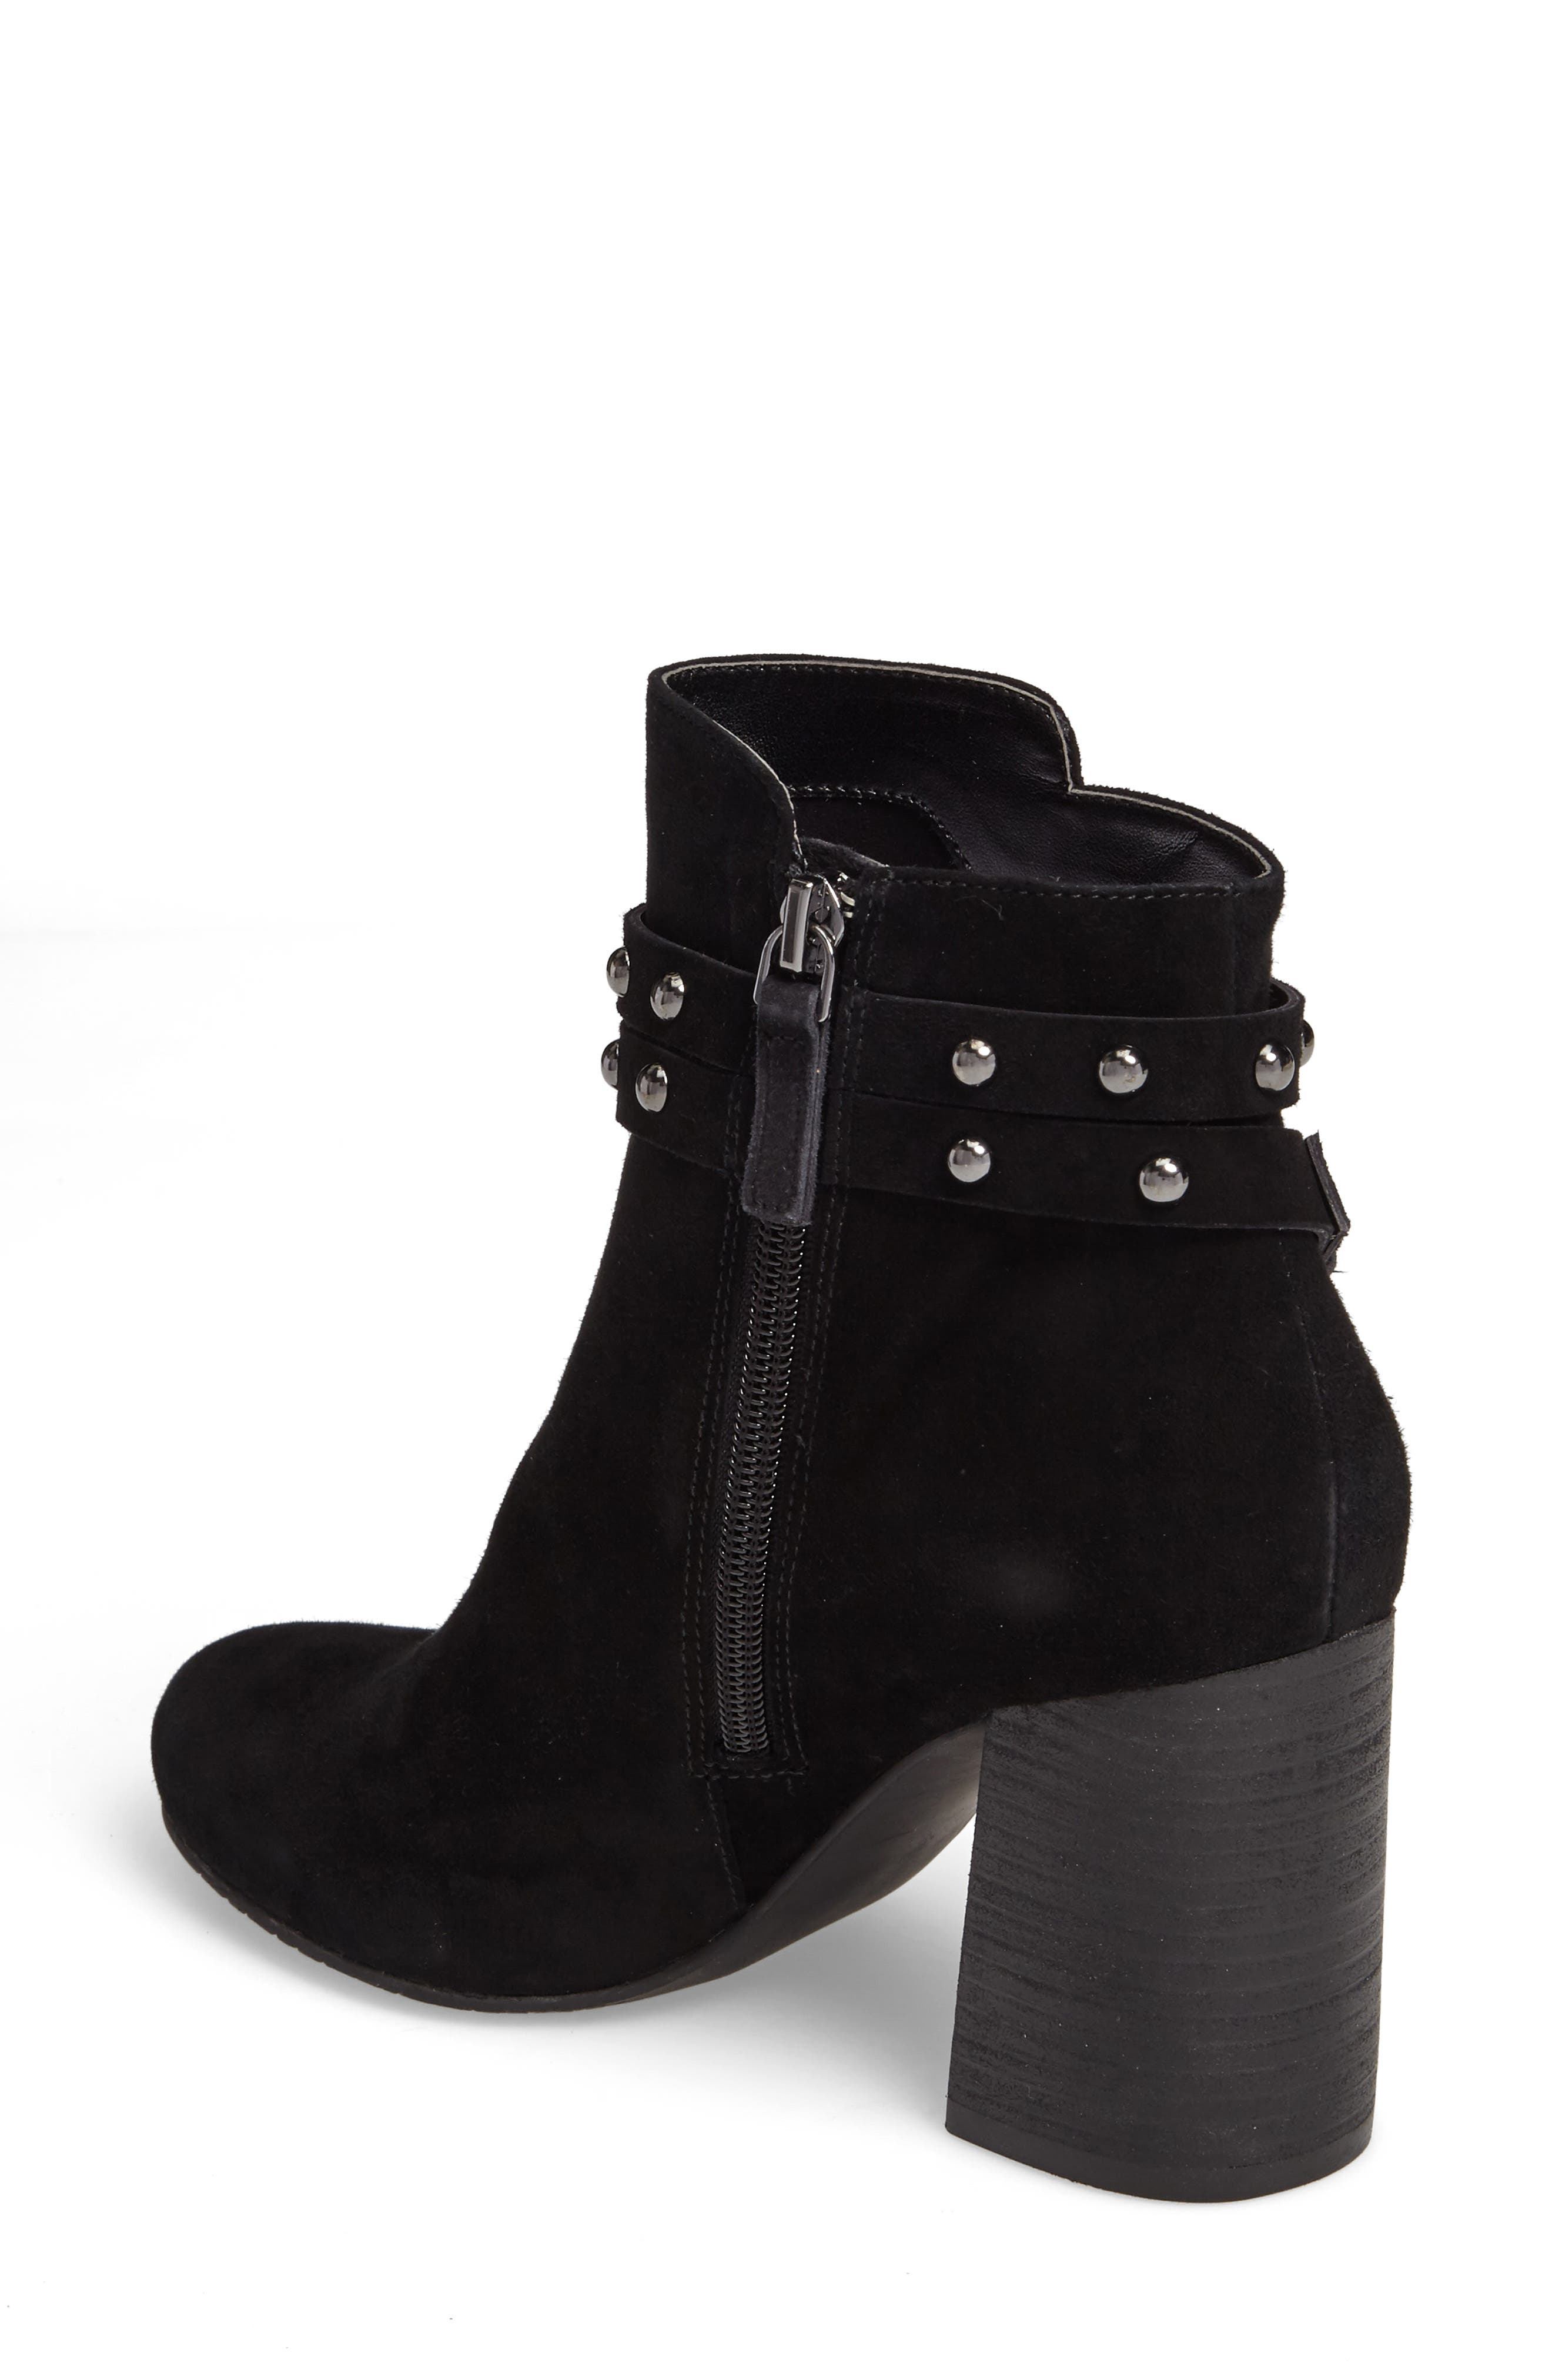 Kolo Flared-Heel Studded Bootie,                             Alternate thumbnail 2, color,                             001